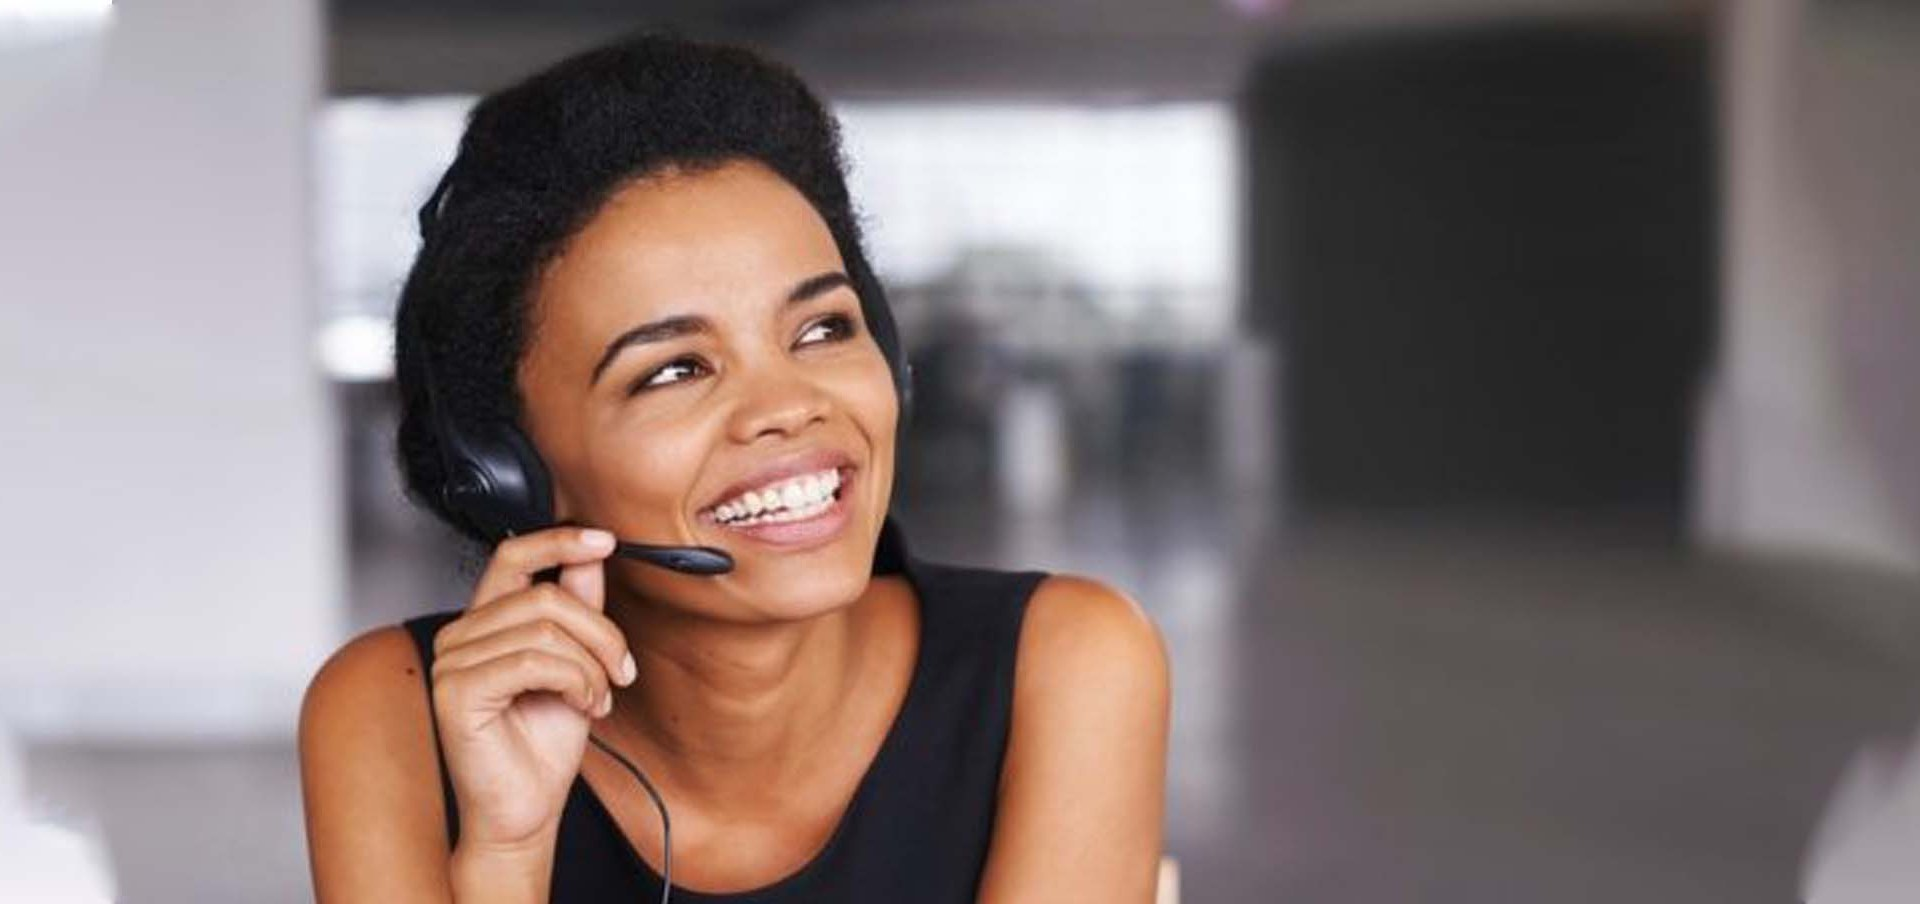 Beneficial Life Insurance Combats Unemployment with the Recruitment of Sales Agents